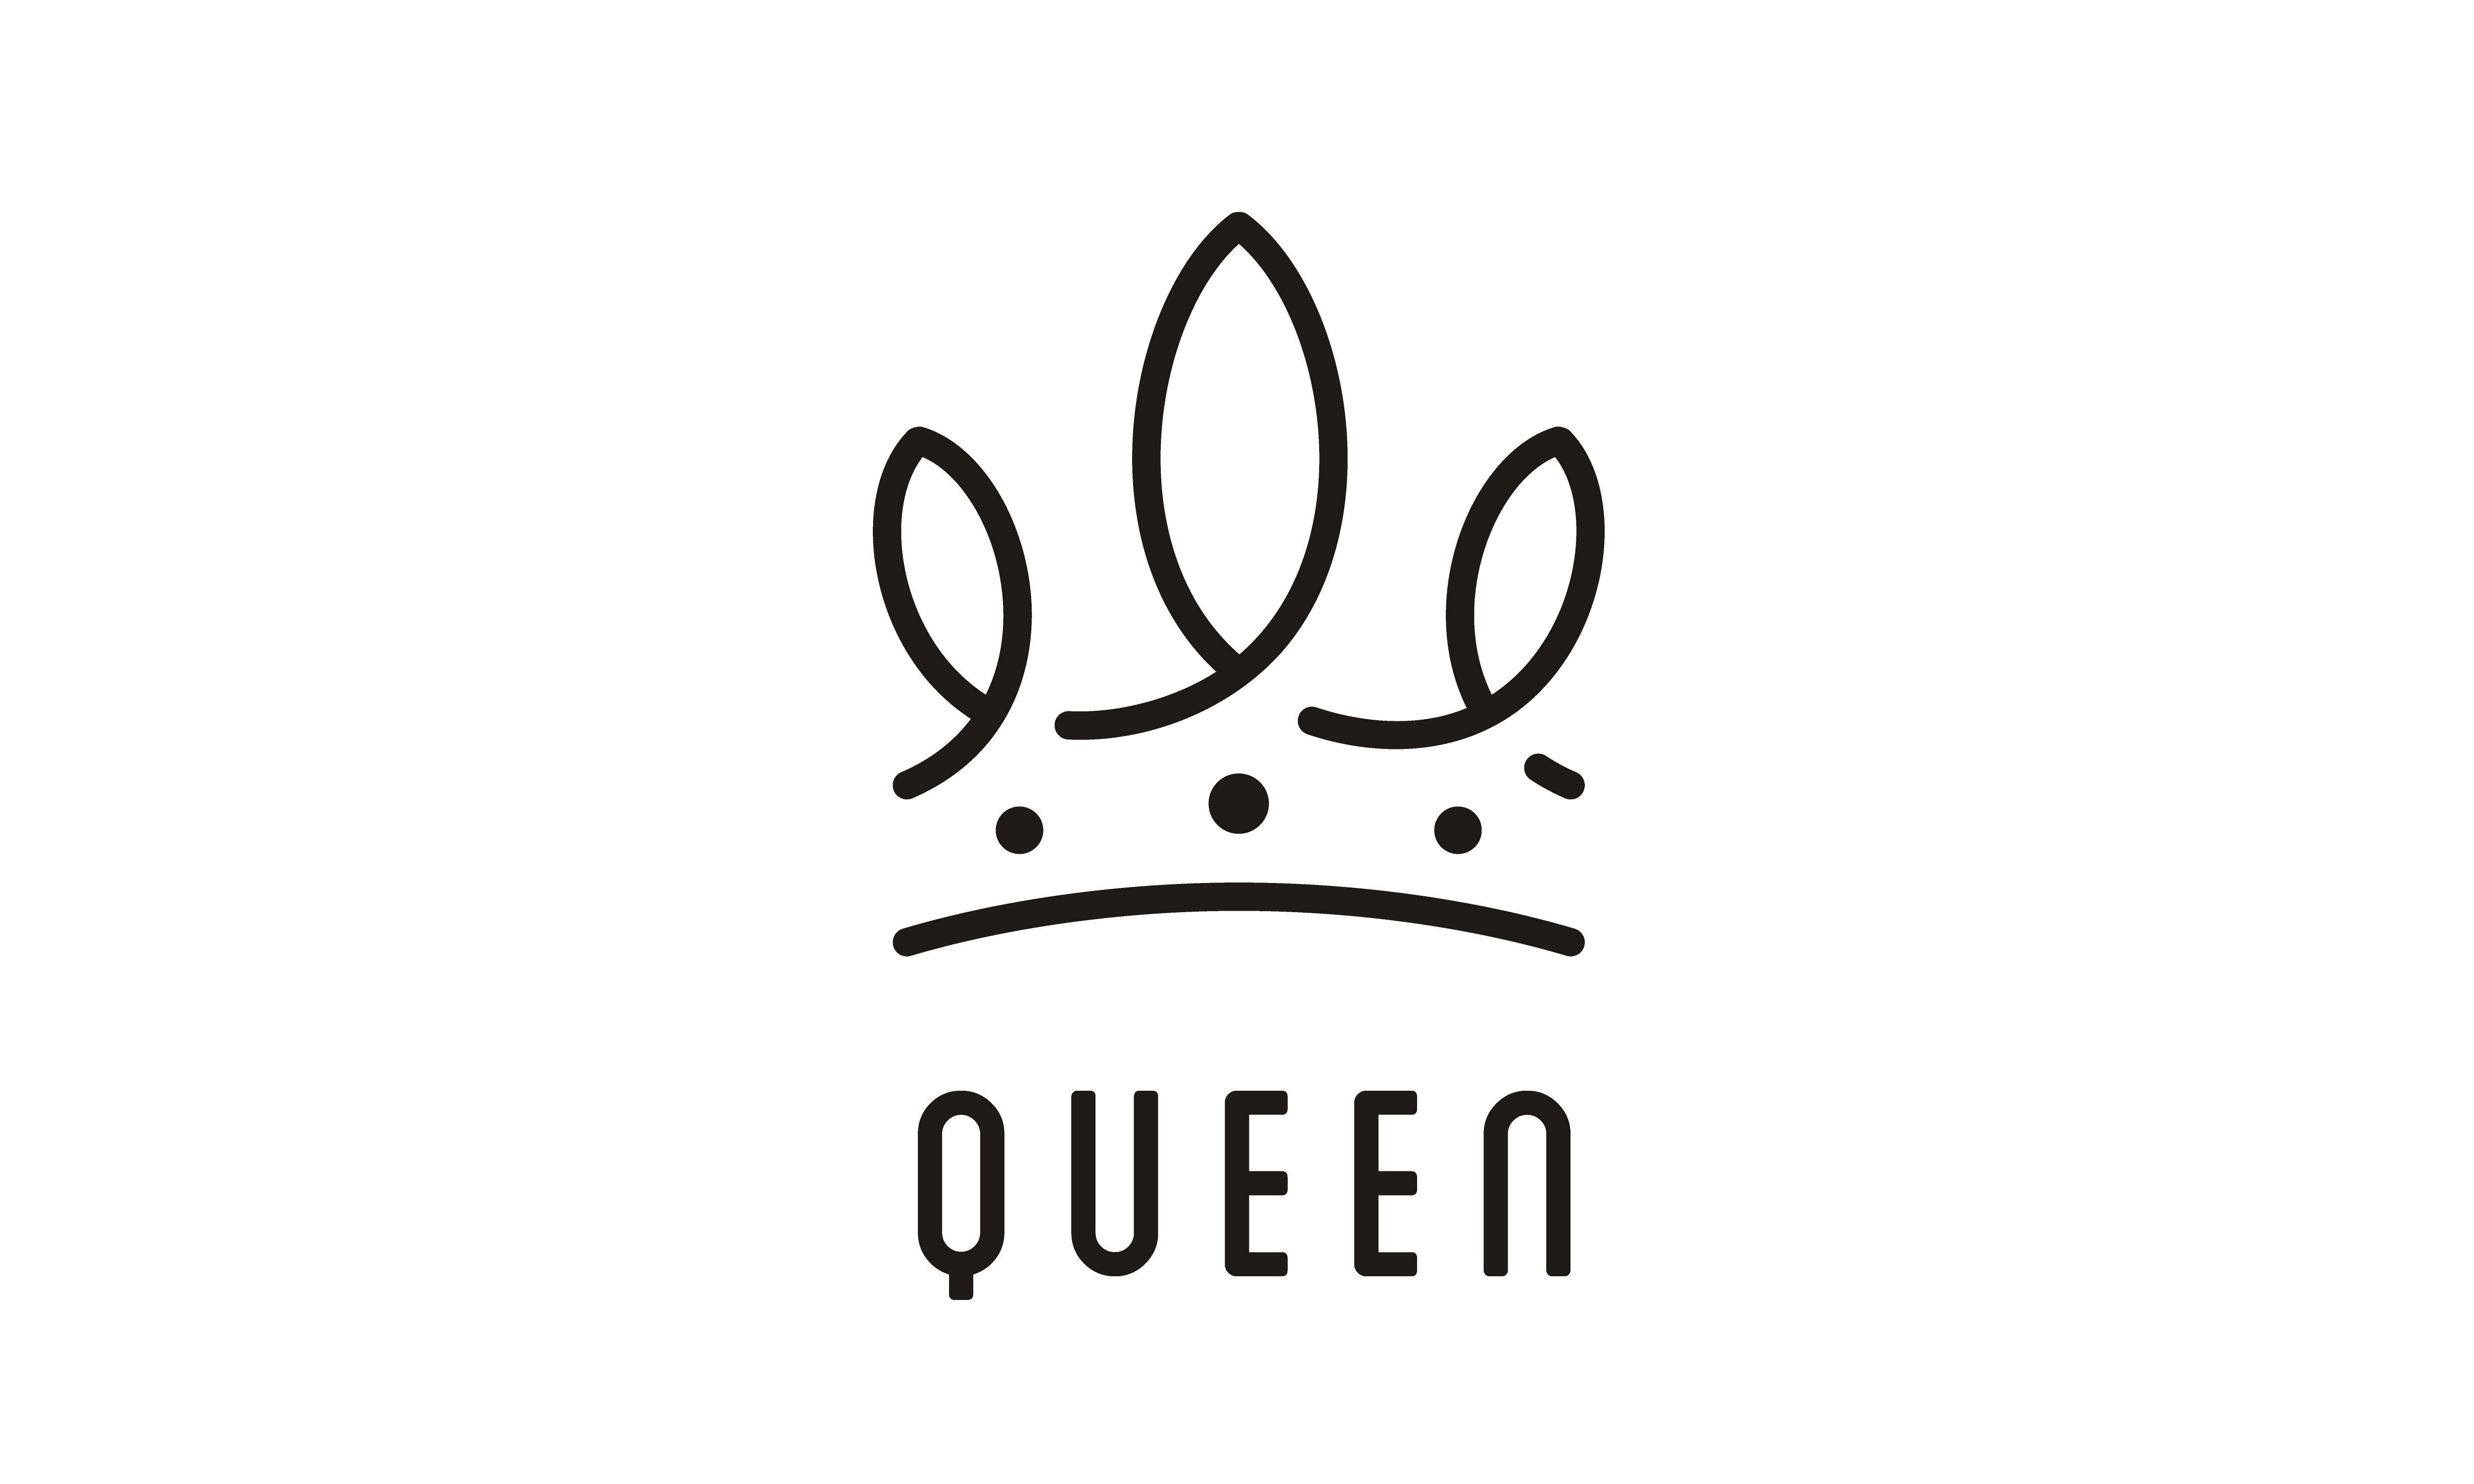 Download Free Crown Queen King Prince Princess Royal Graphic By Enola99d for Cricut Explore, Silhouette and other cutting machines.